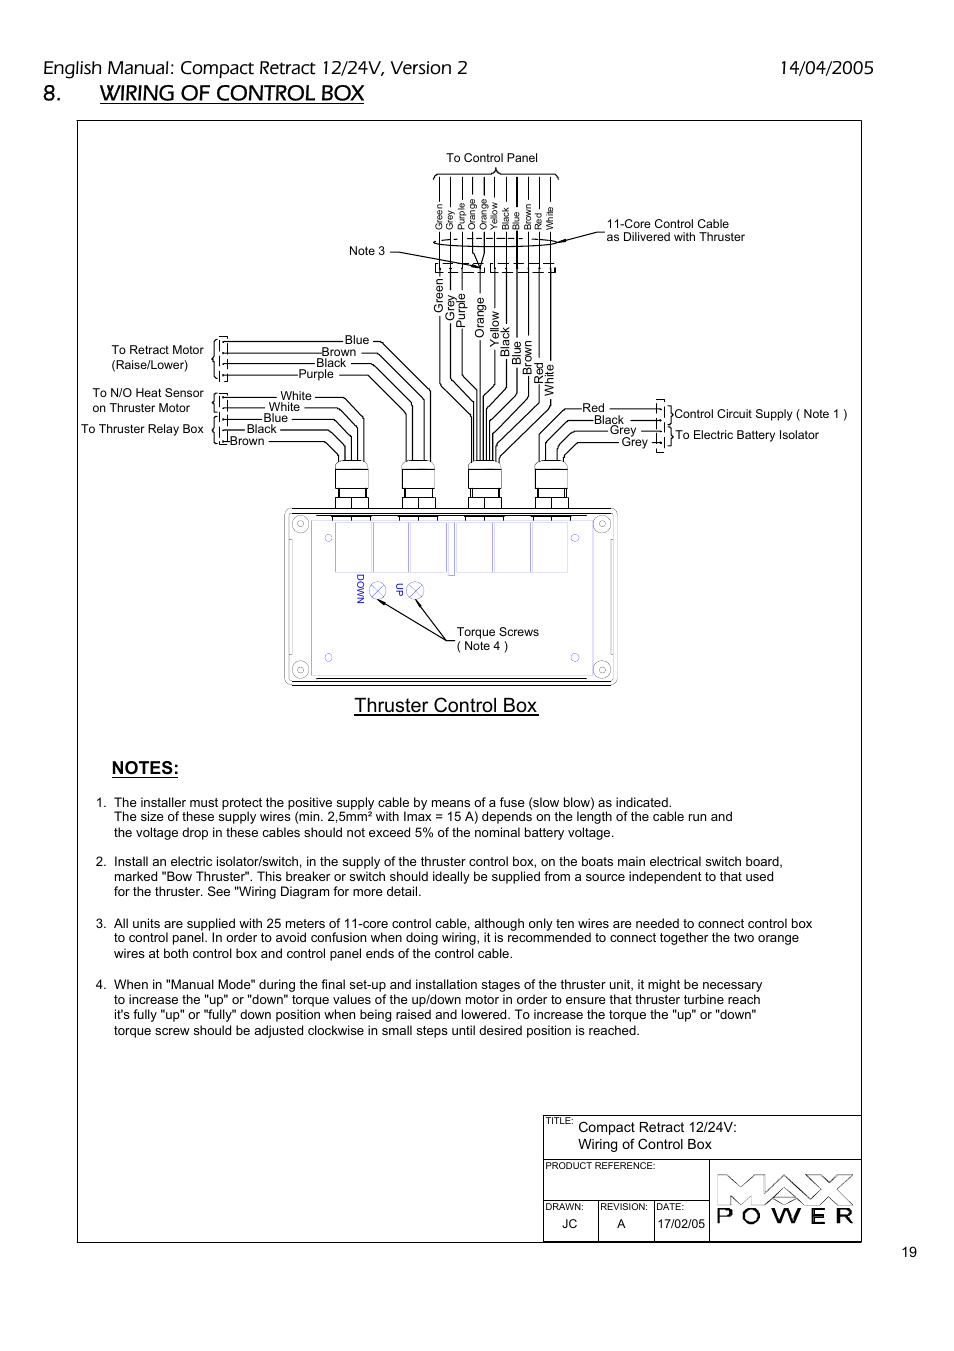 Wiring of control box, Thruster control box | MAX Power COMPACT User Manual  | Page 19 / 21